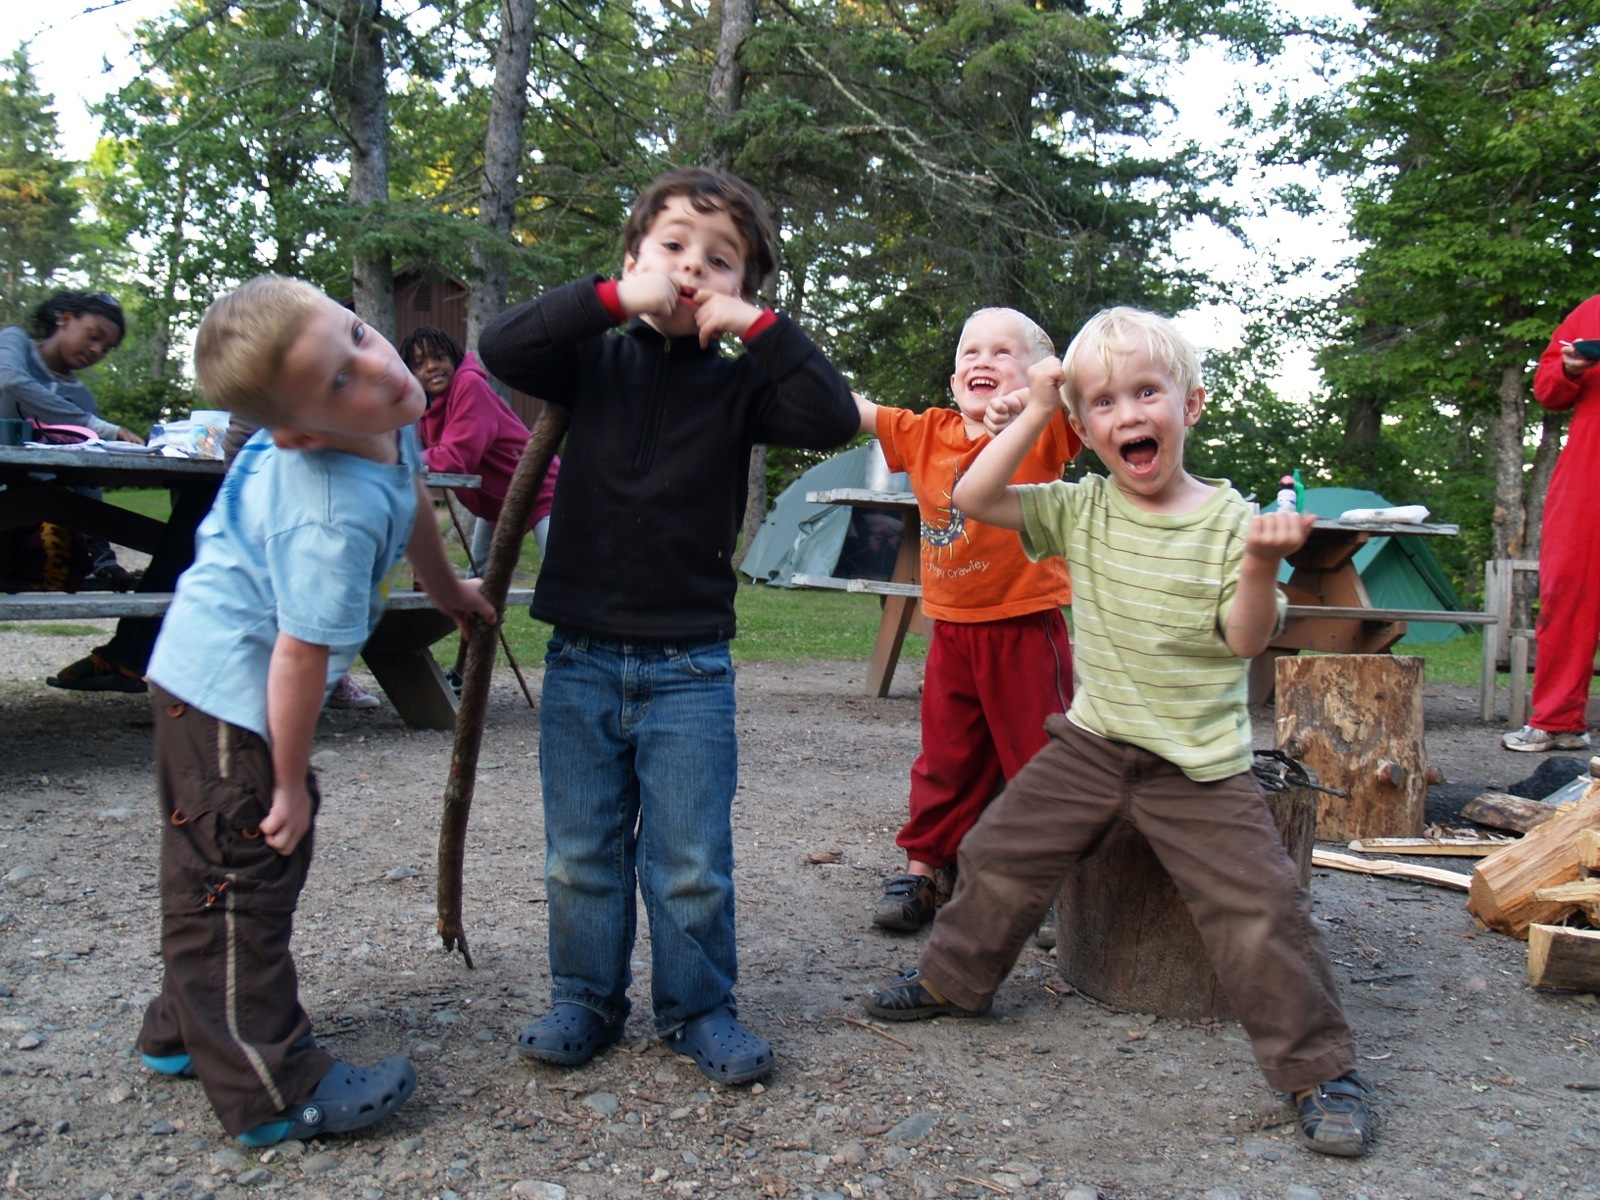 Four young boys get silly on Wilderness Inquiry's Itasca Family Adventure.